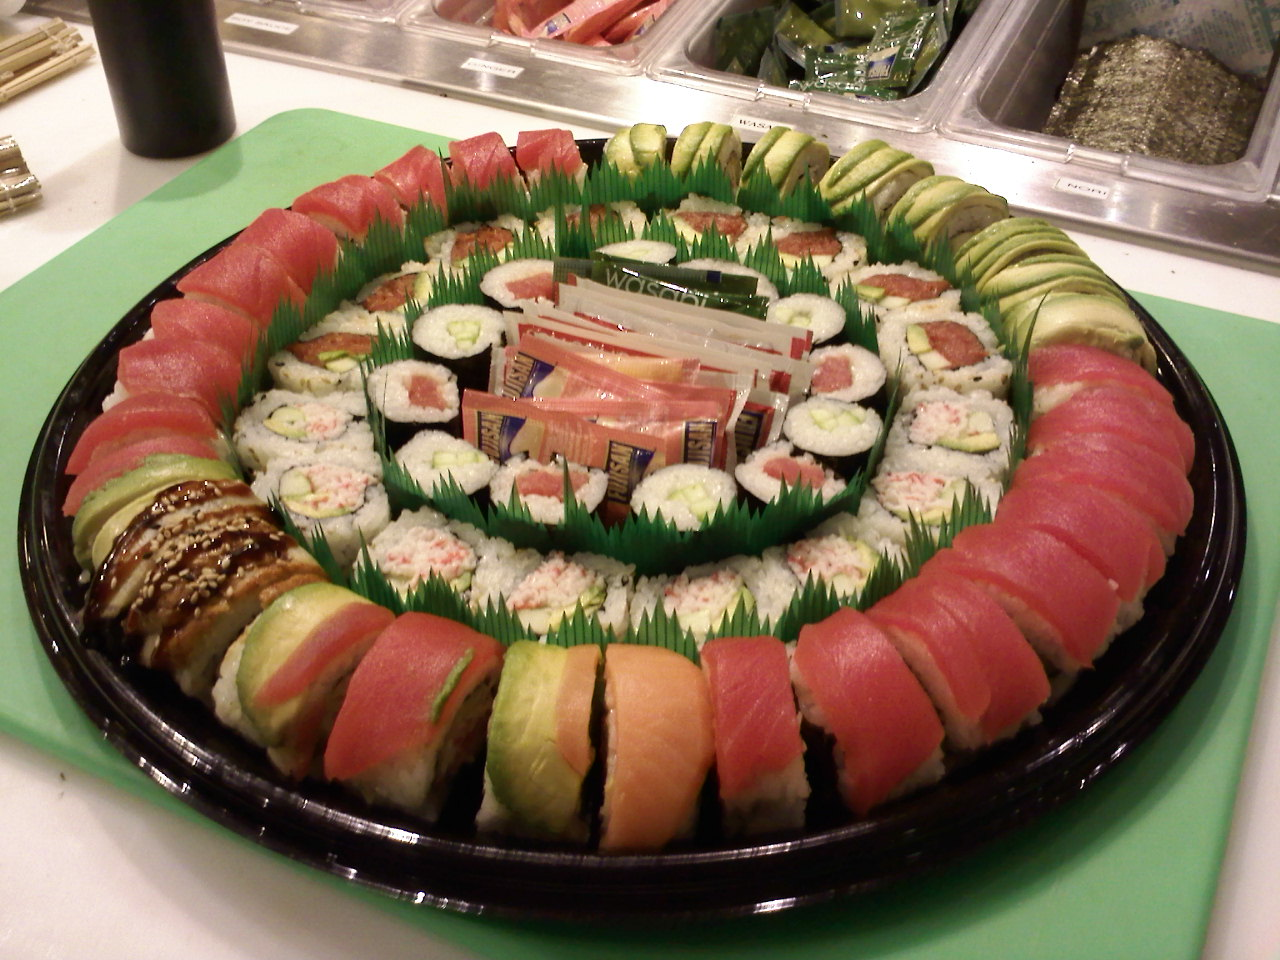 Newport beach :: sushi party platter i made at work